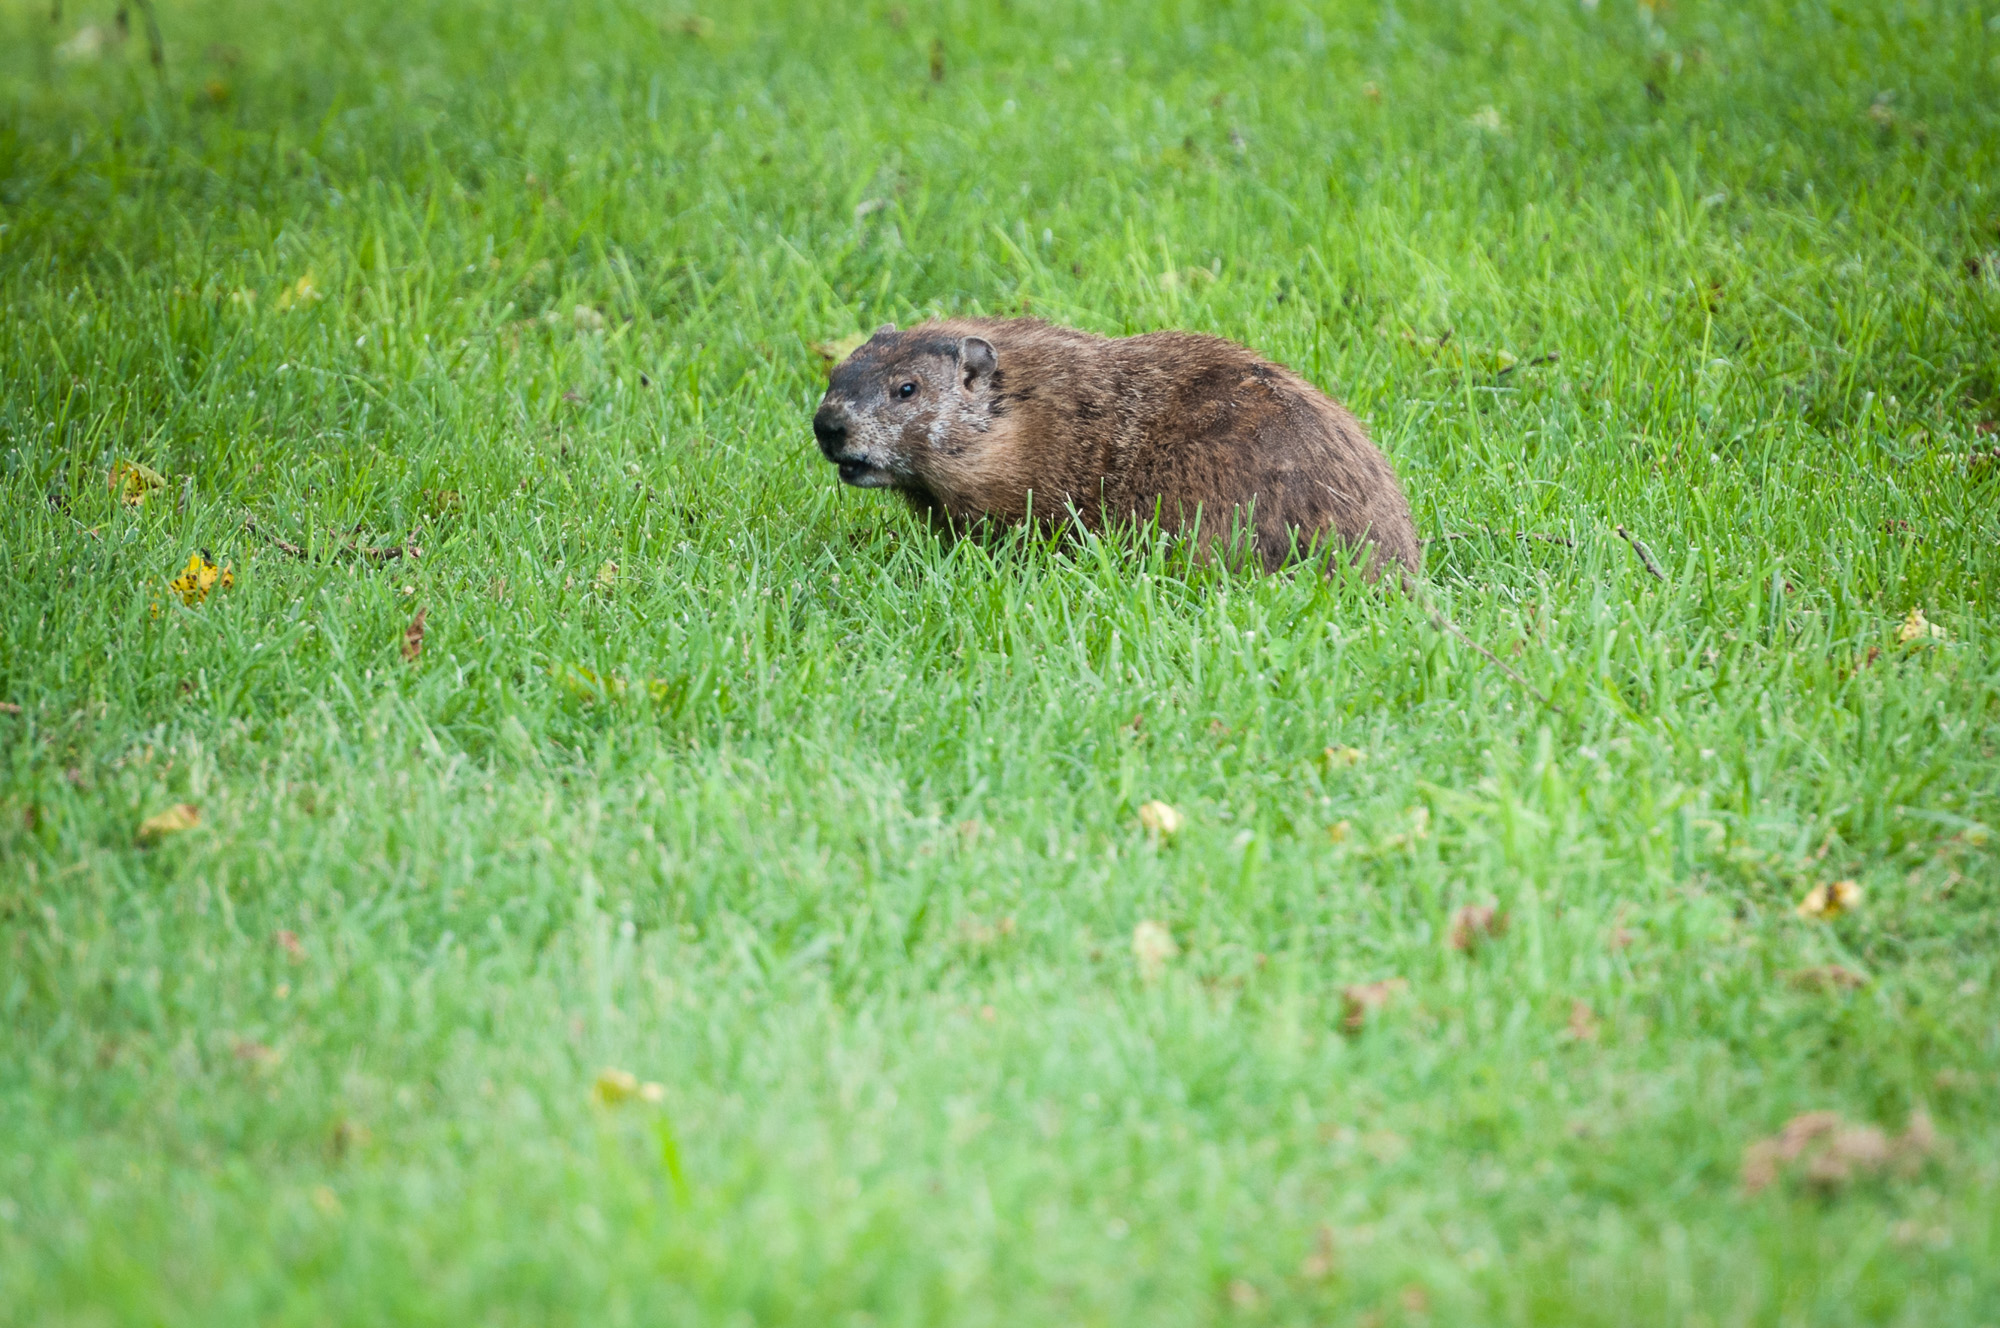 Groundhog watching me as I photograph it